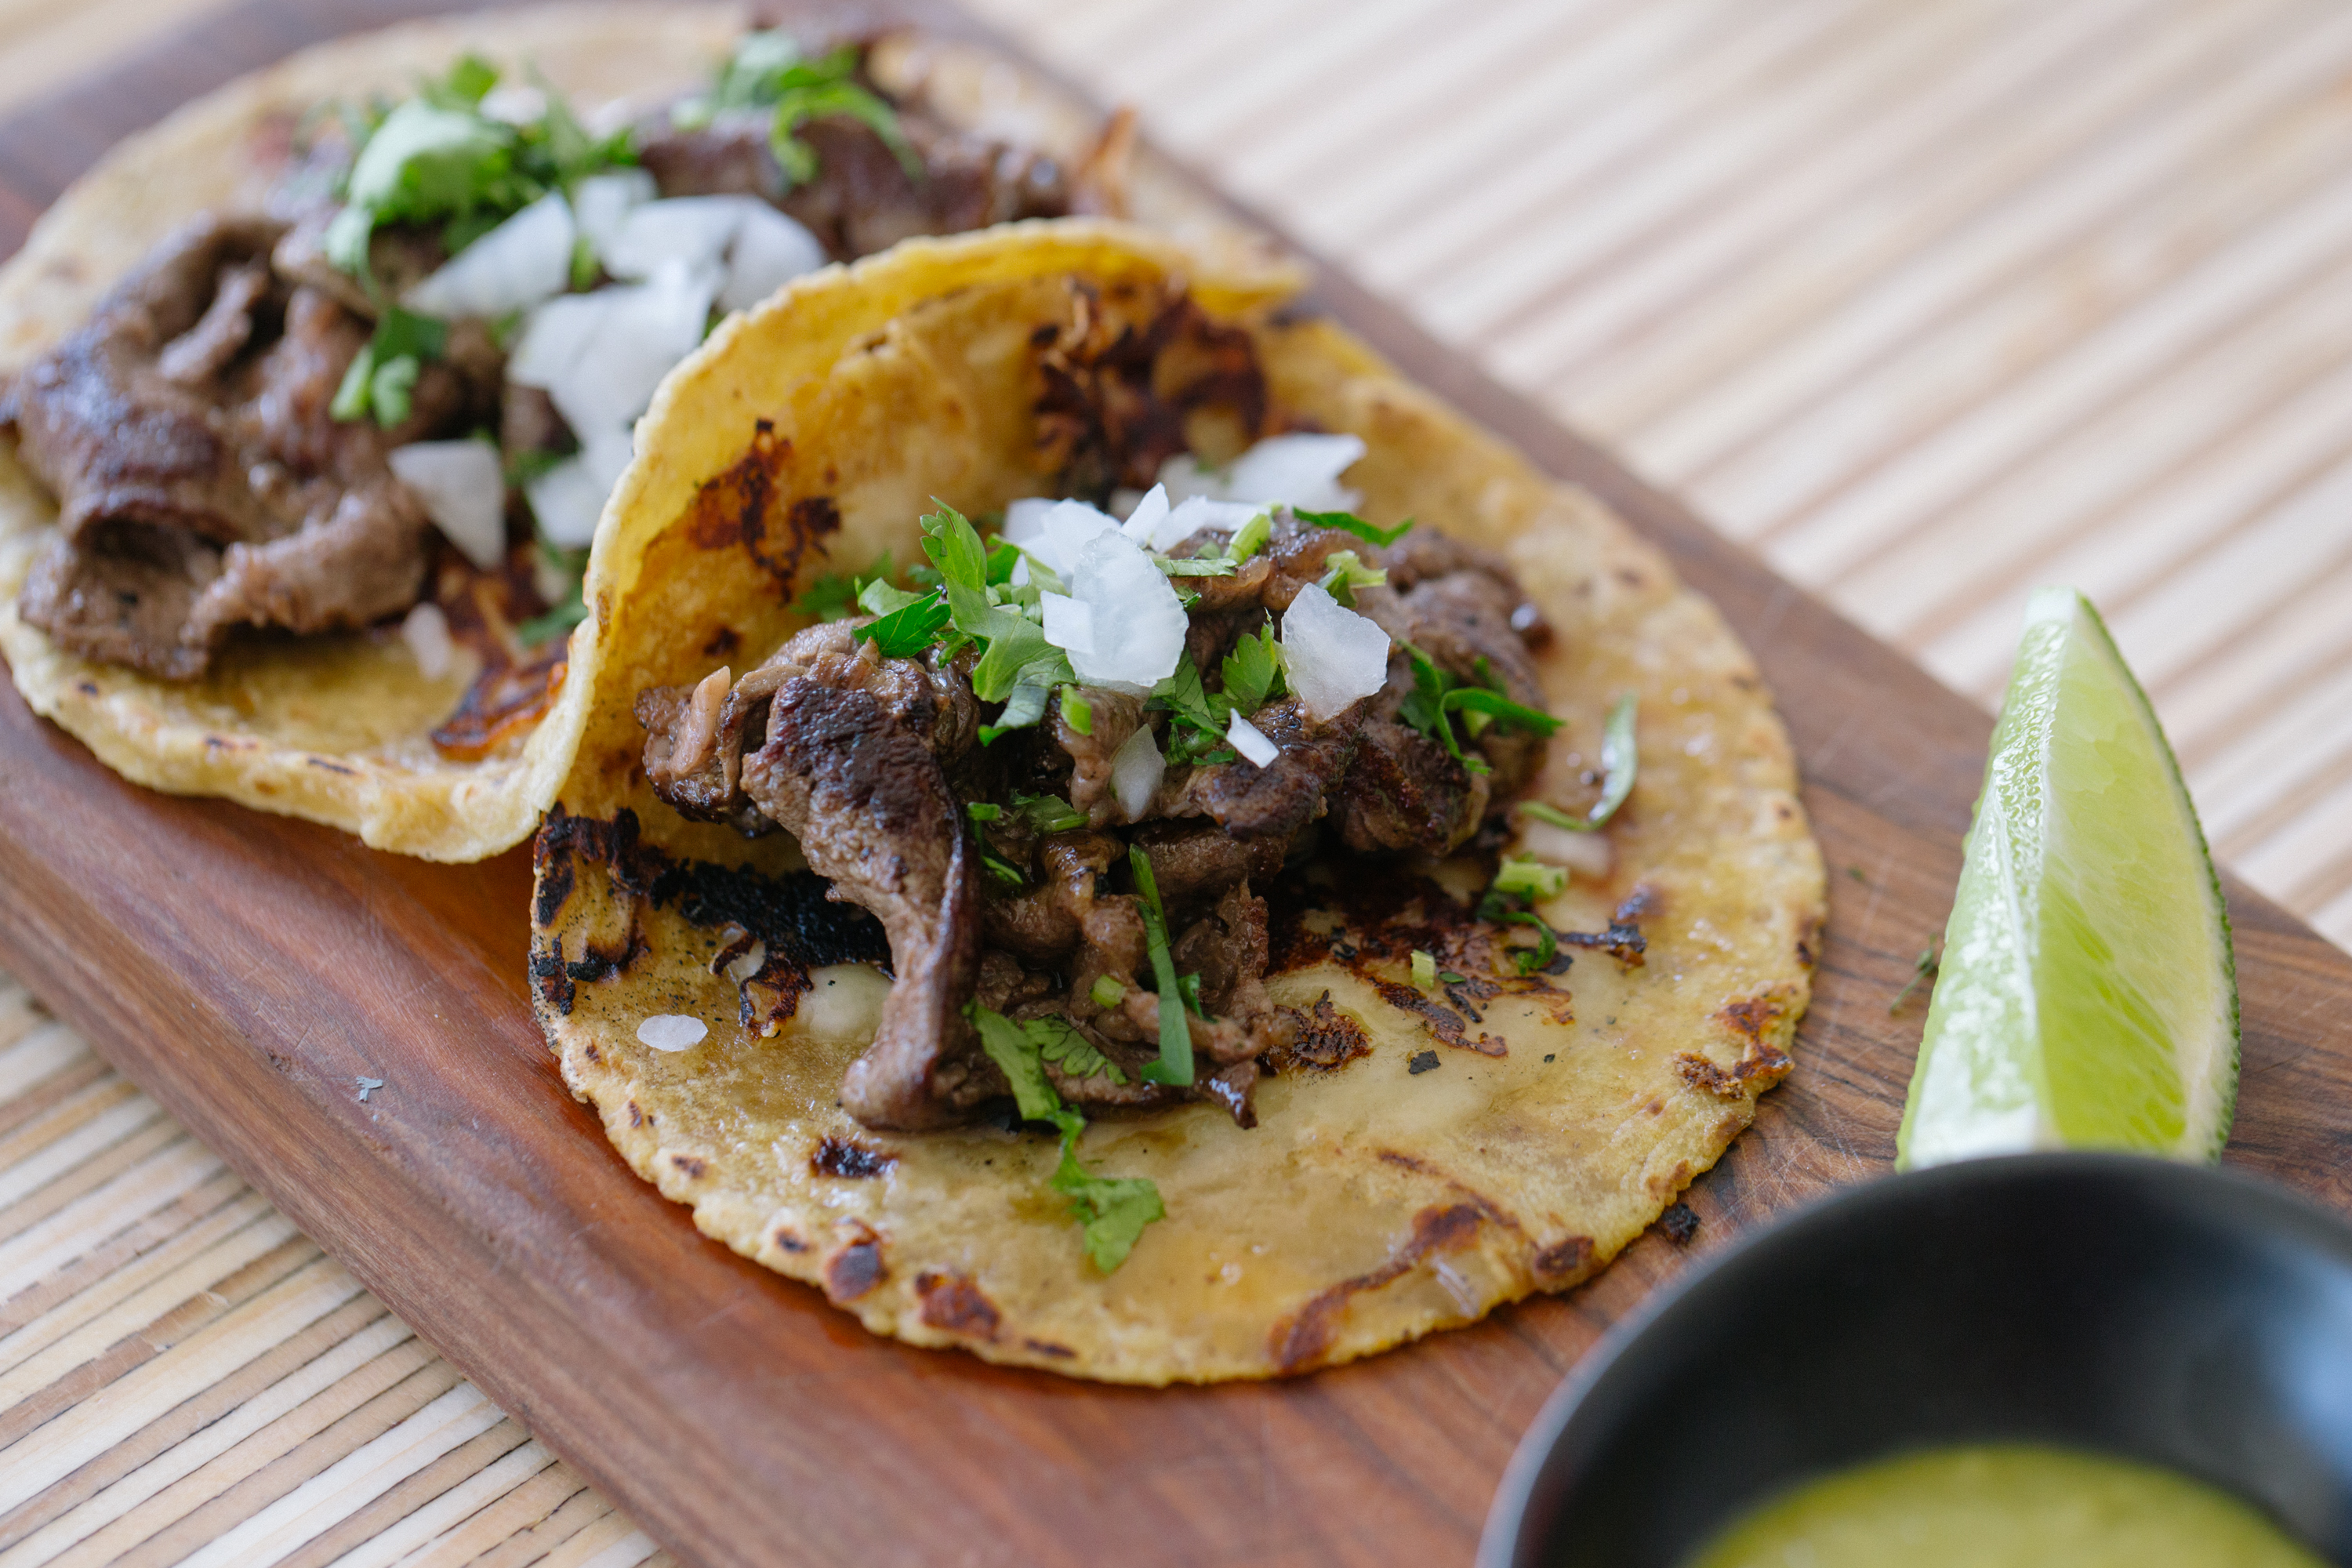 Two tacos with beef and onions sit on a wooden board